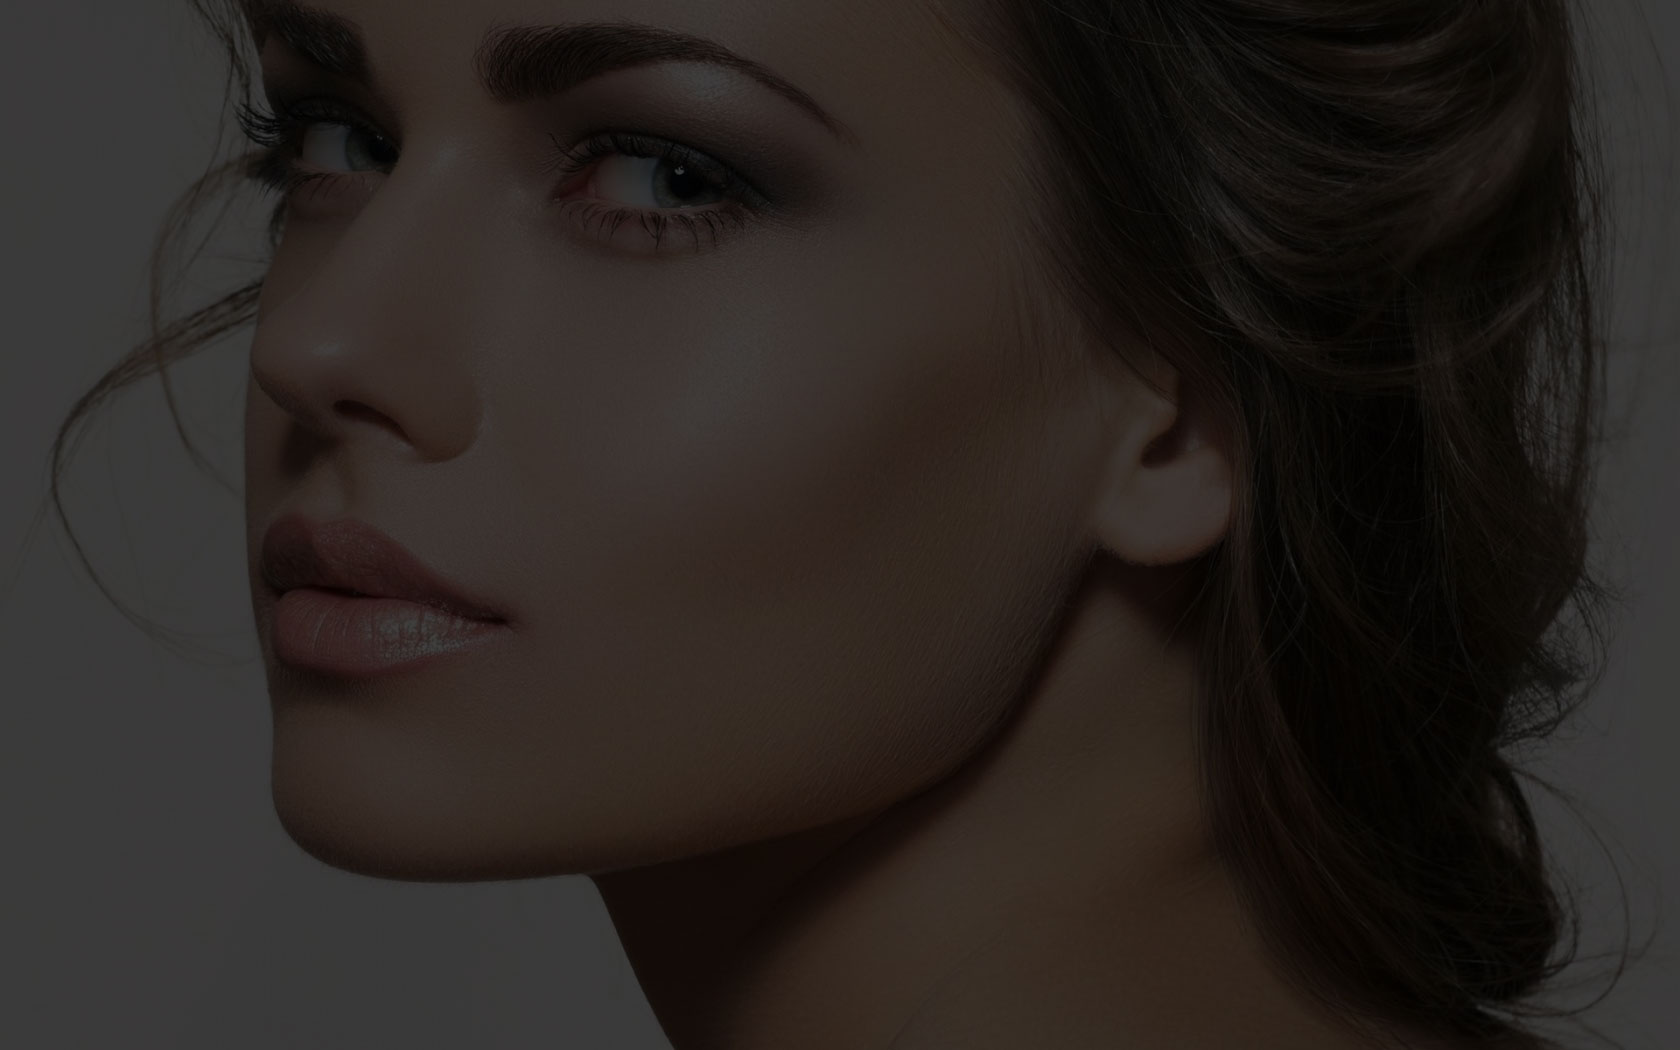 Visage Cosmetics | The Midland's Premier Non-Surgical Cosmetic Treatment Specialists